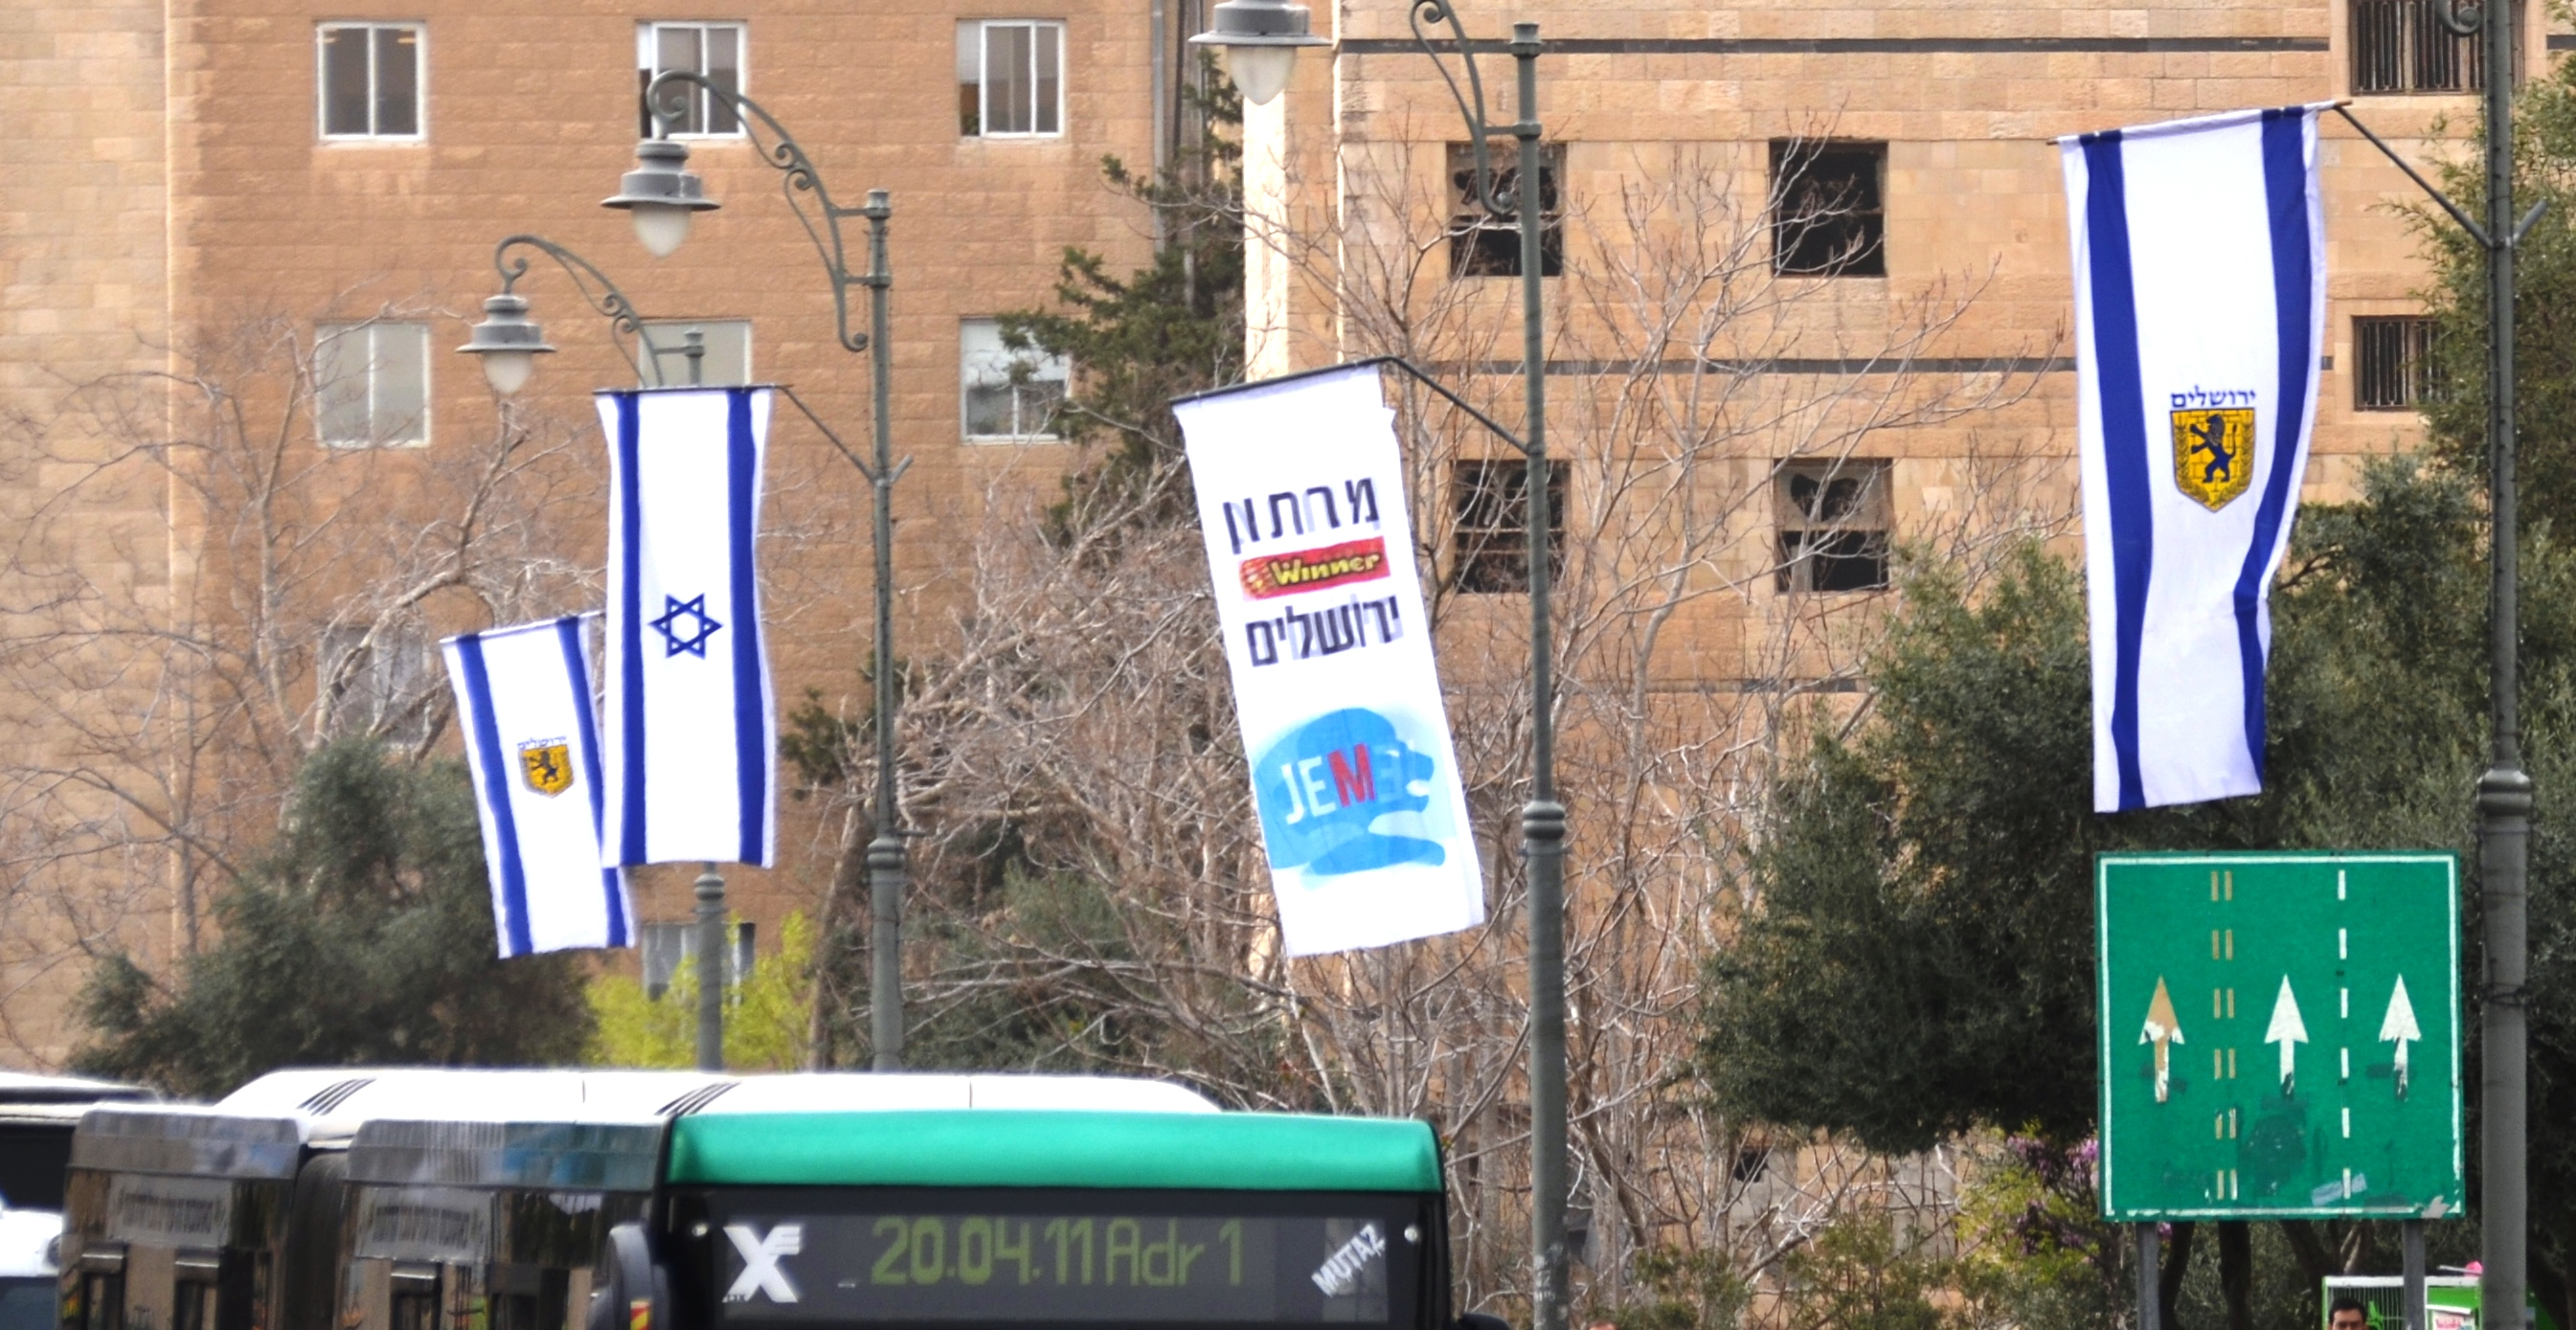 Signs for Jerusalem marathon